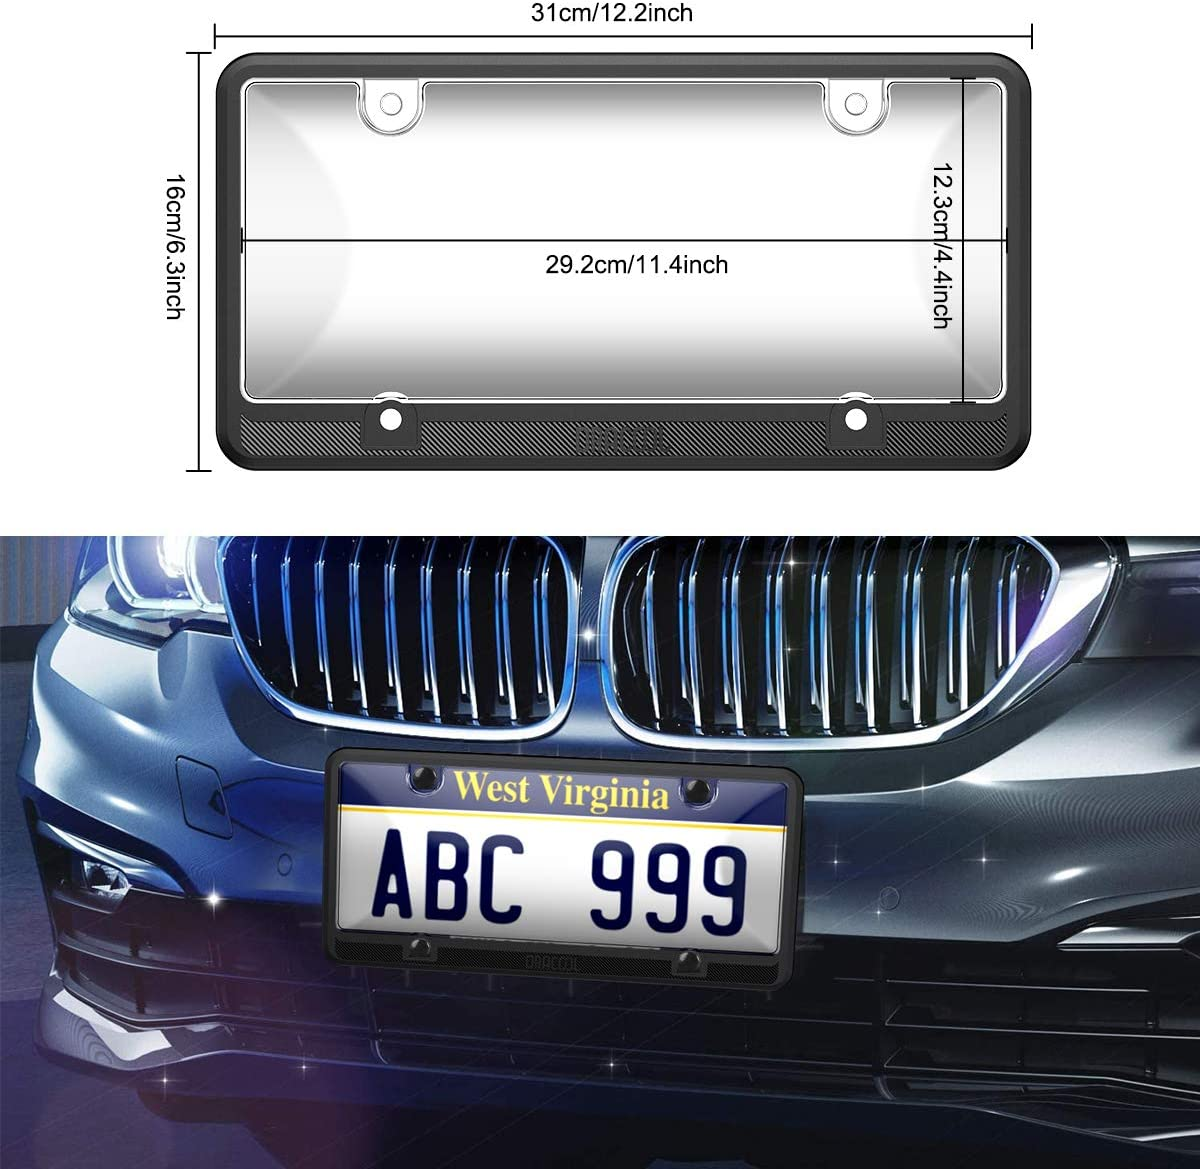 Black Dracool for License Plate Frame 4 Holes Silicone Frames for US Standard Car and Clear Transparent Plastic Covers 360 Degree Unbreakable Plates Holder Waterproof,Rust-Proof 4 Screws Included